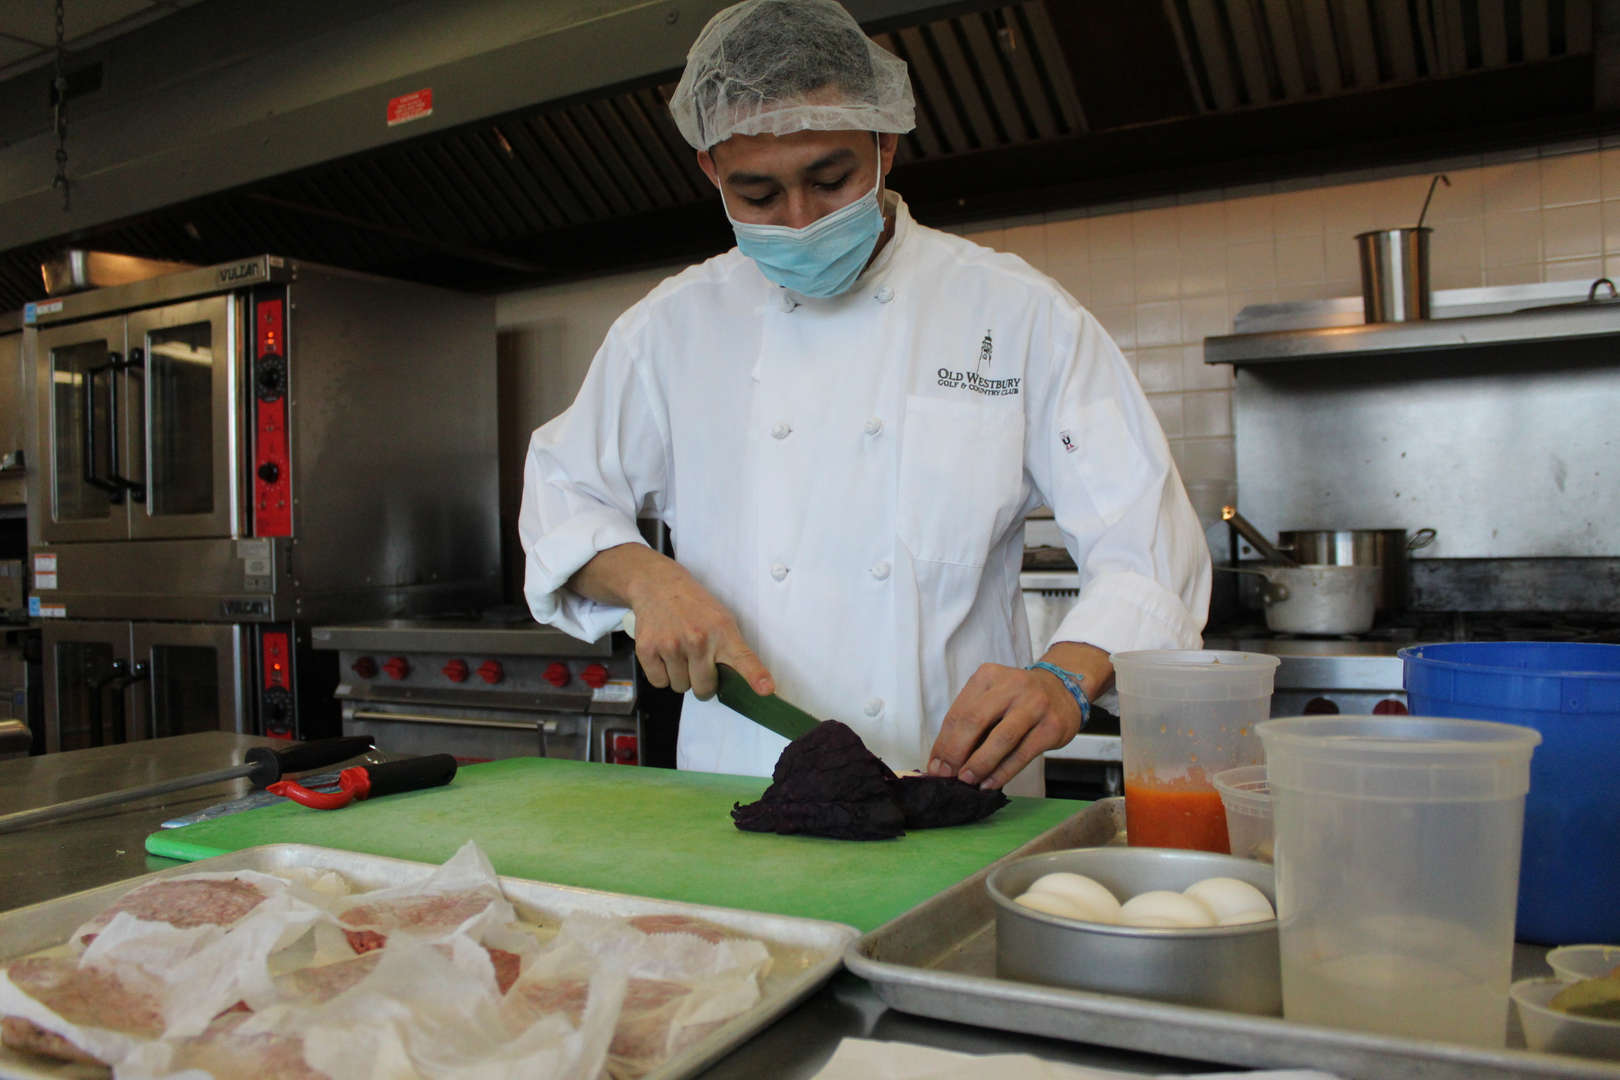 Culinary student chopping purple cabbage